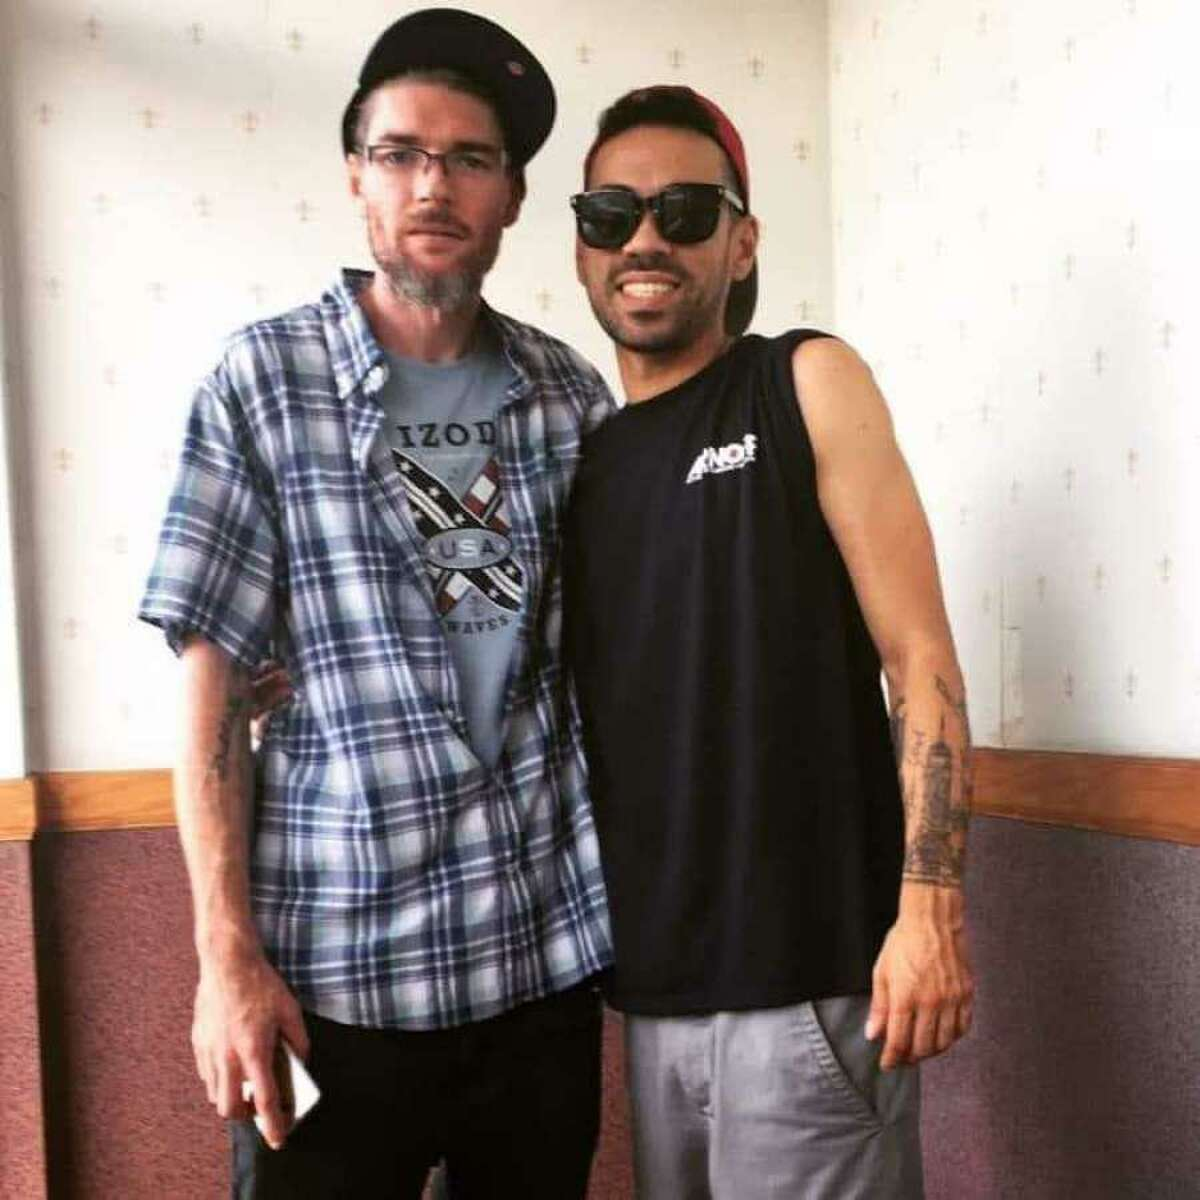 A photo of David Ramos, right, and Jason Hoffman, left, taken in August 2019.